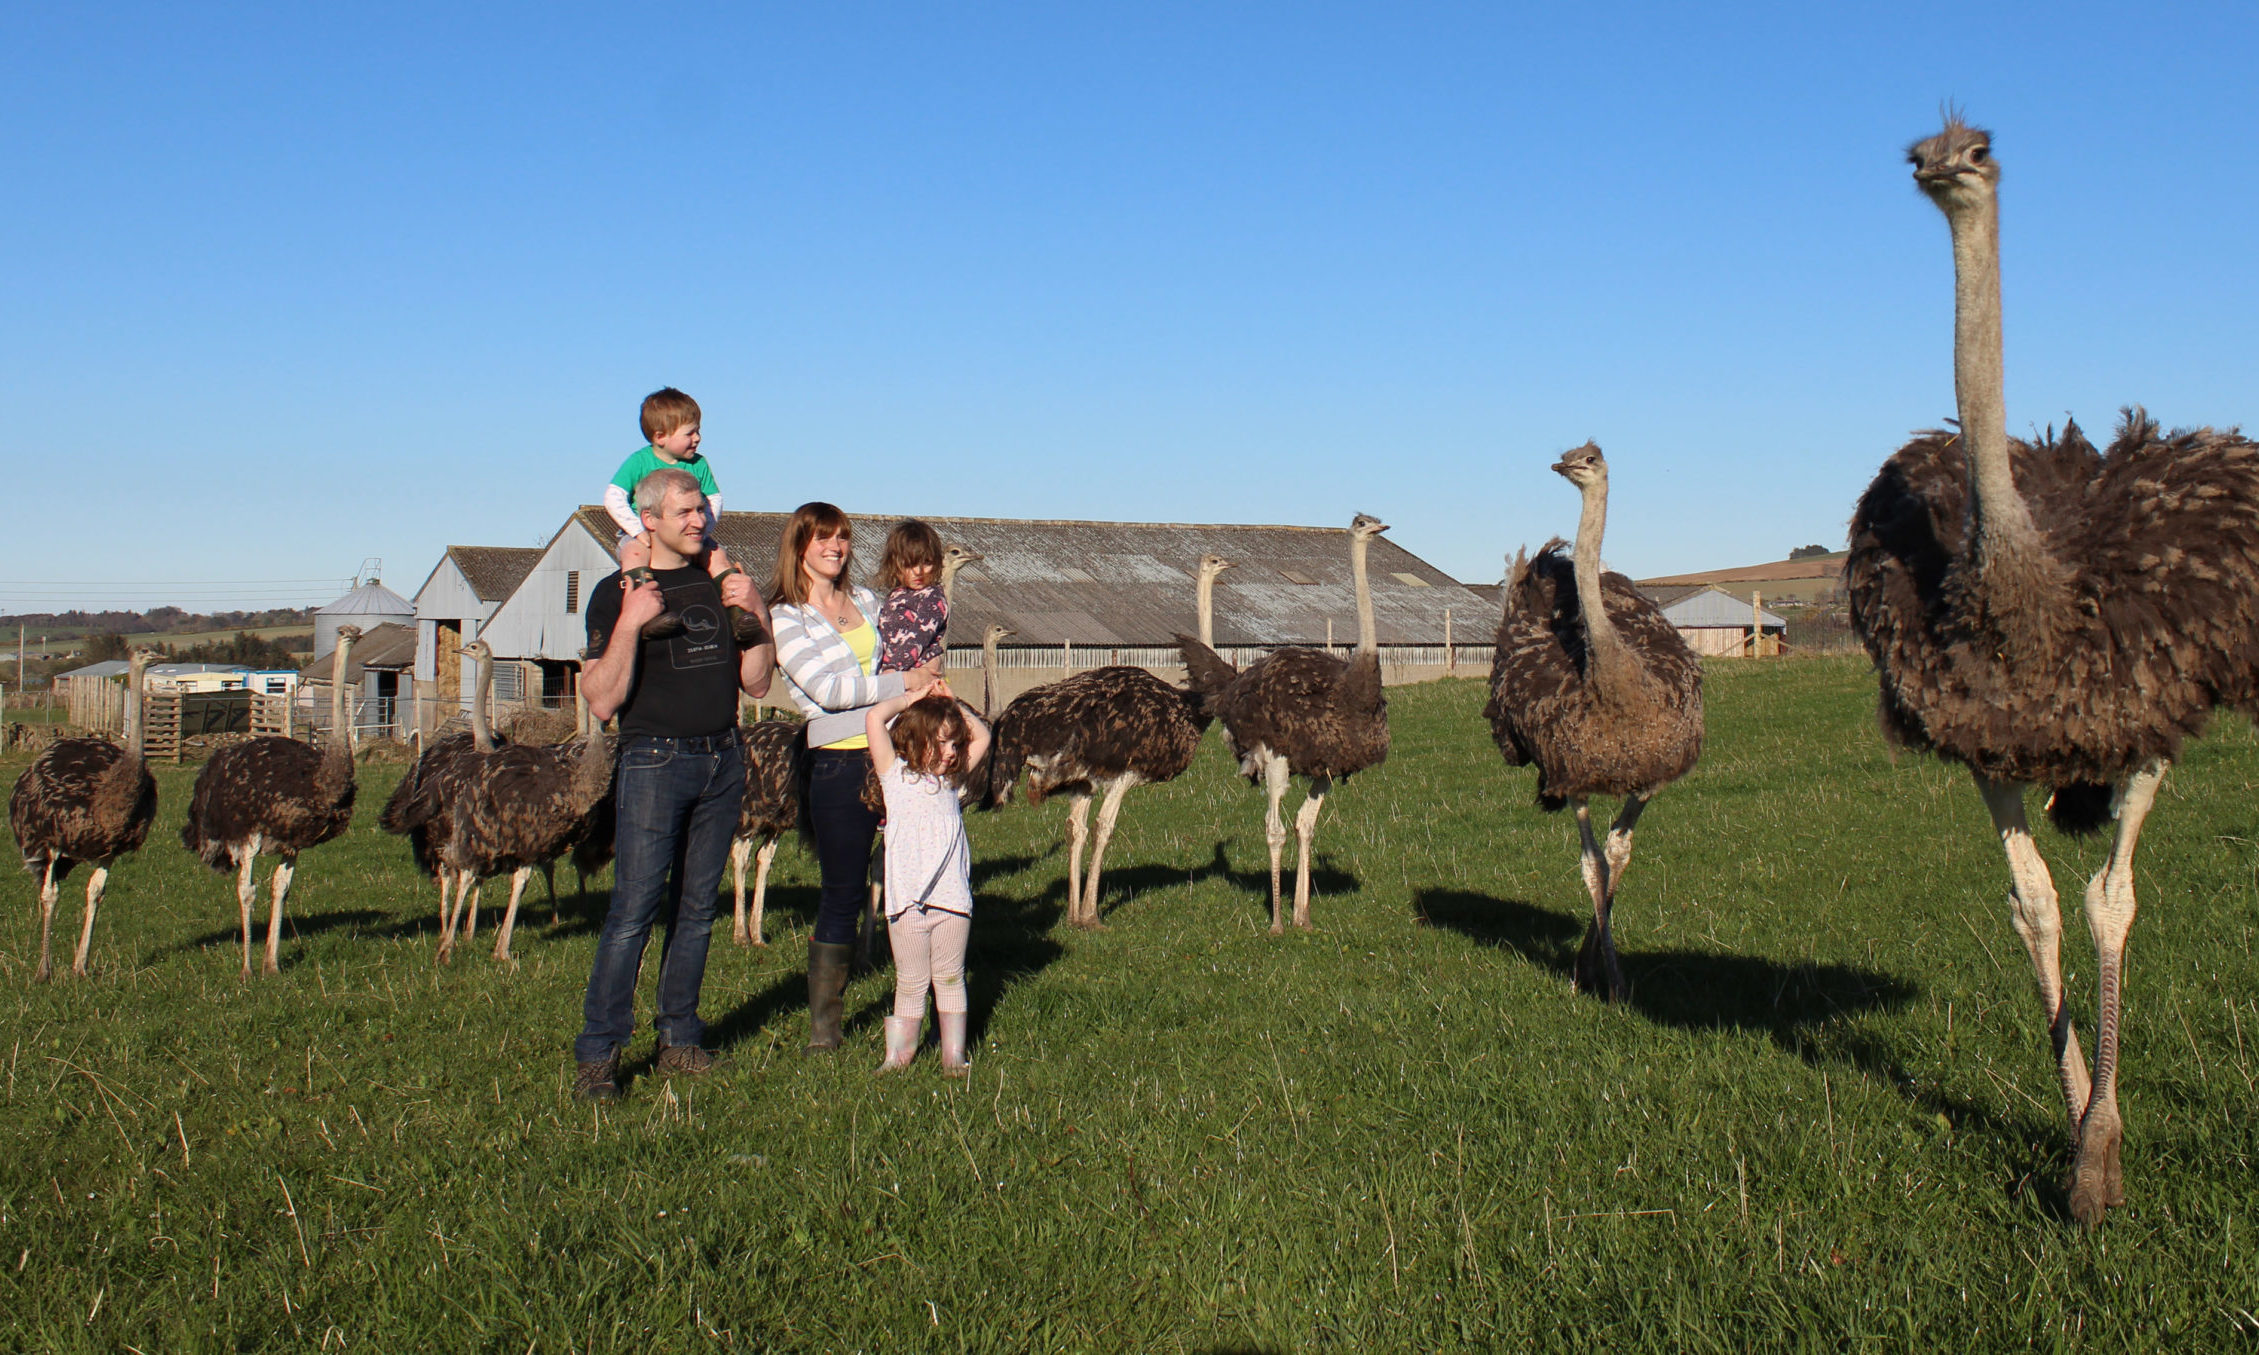 George and Isla French with their children Joy, Felicity and George at Little Rowater Farm, Aberdeenshire